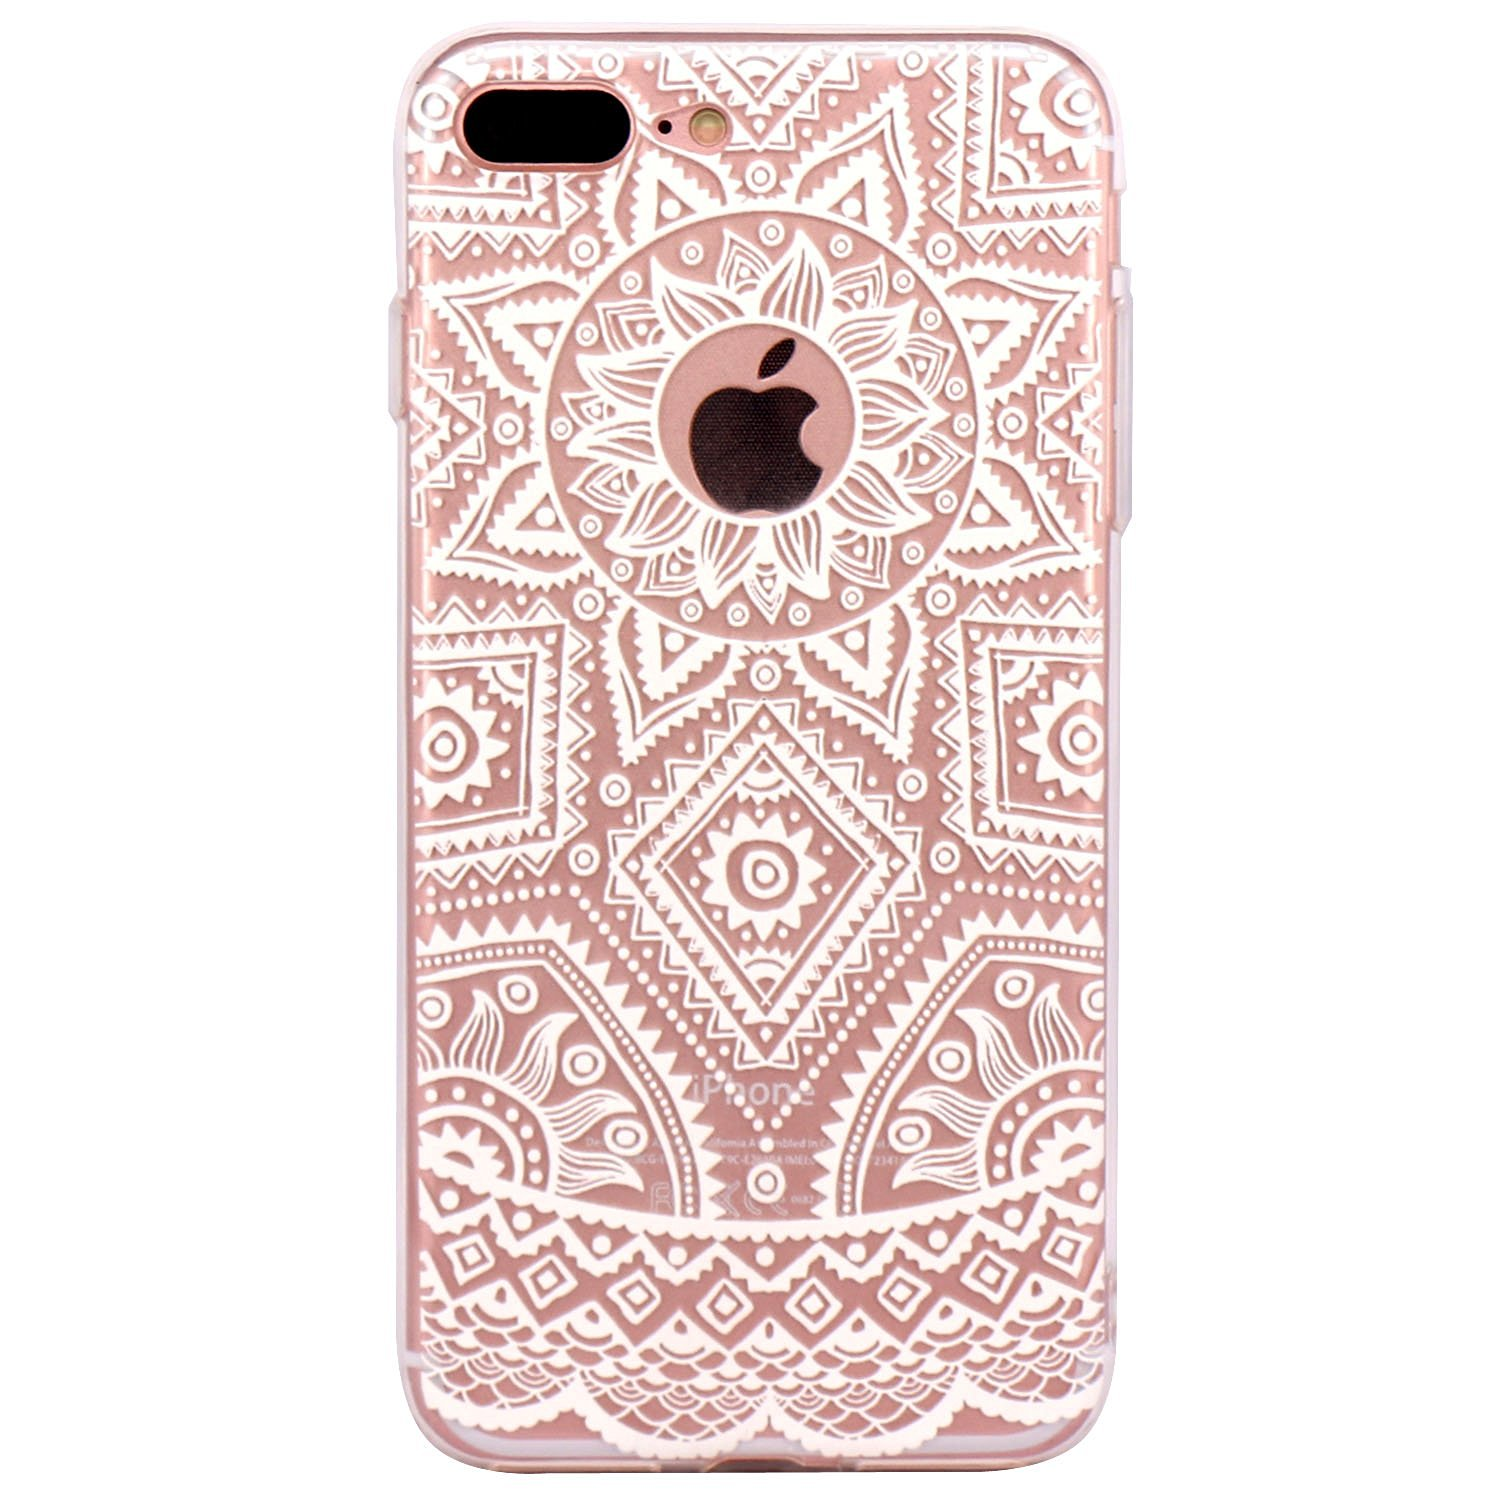 bd6d9e9619d Buy iPhone 5s case